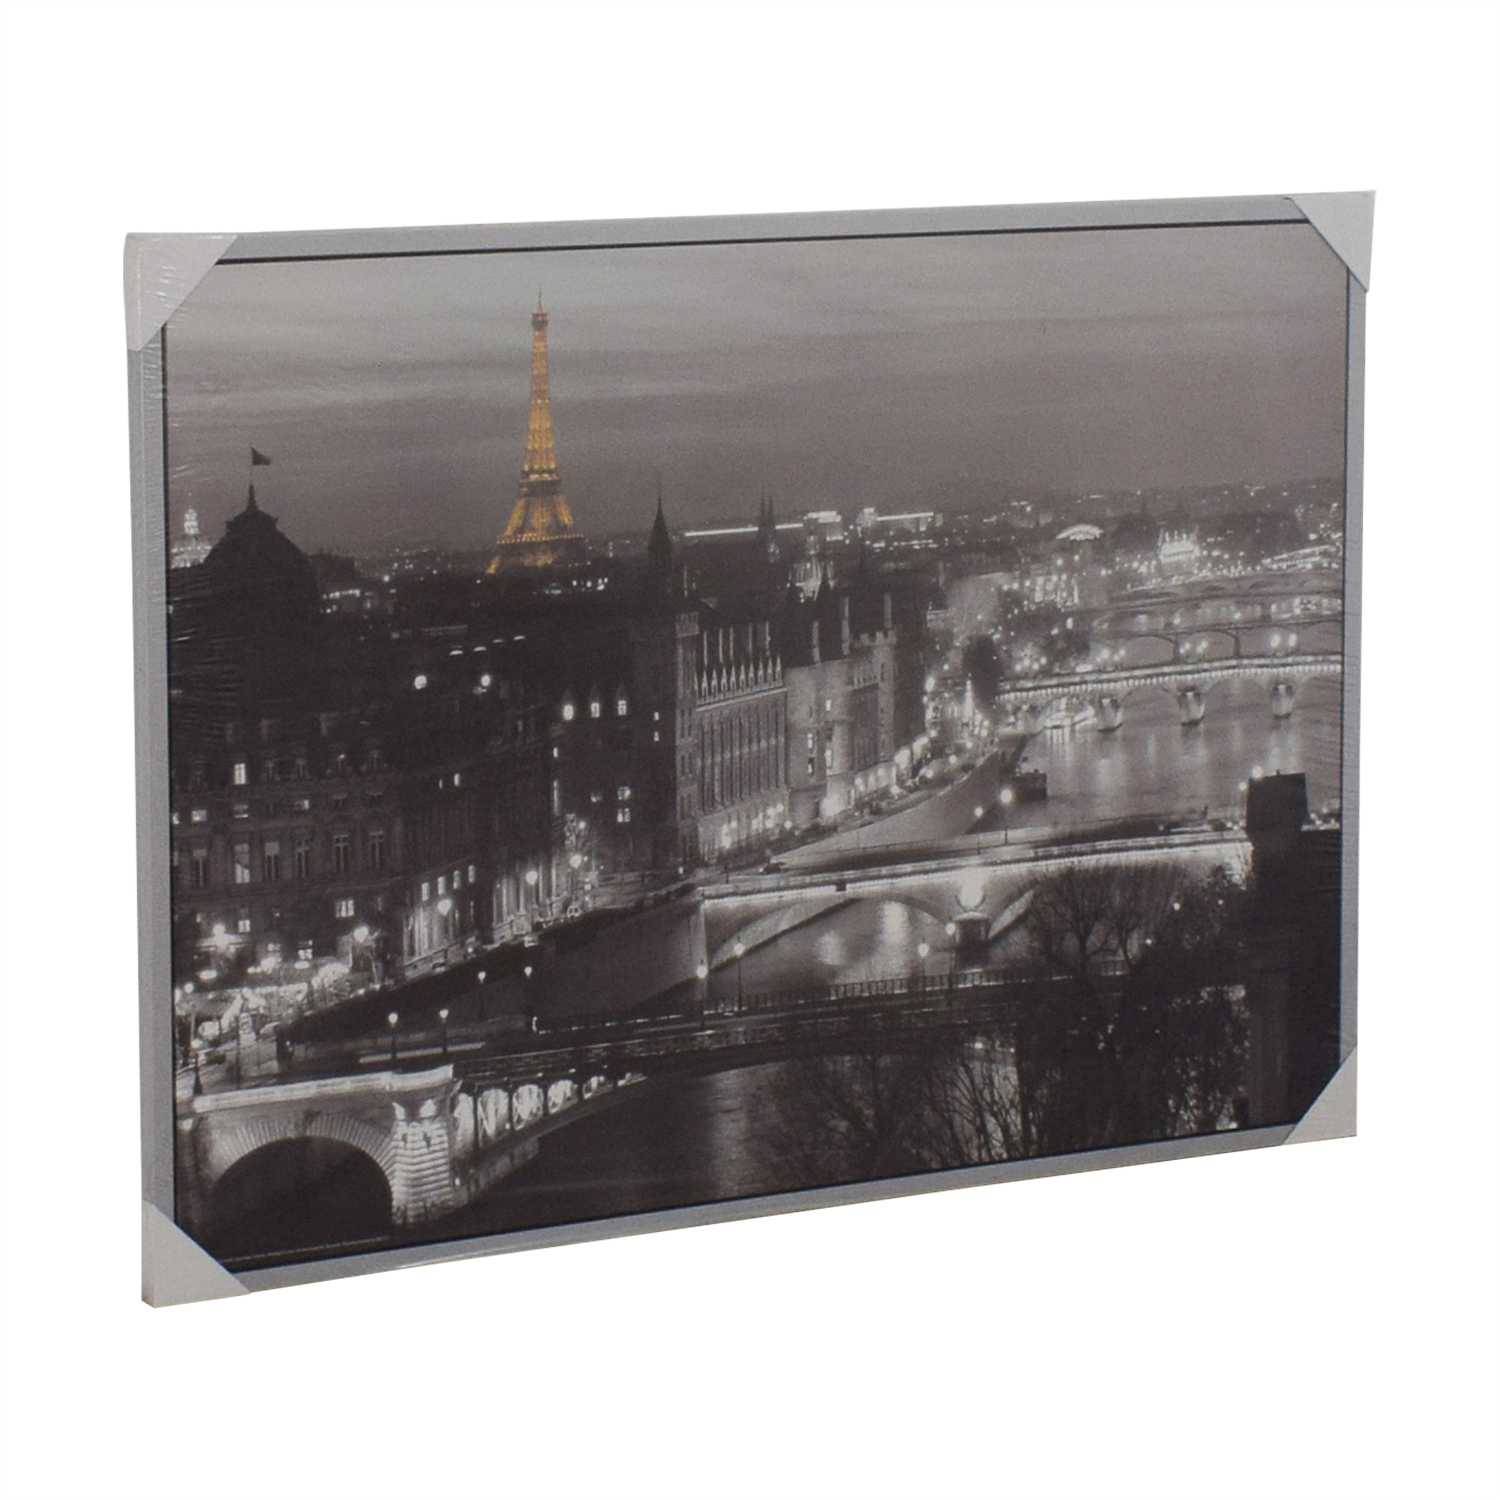 IKEA IKEA Black and White Paris Wall Art price